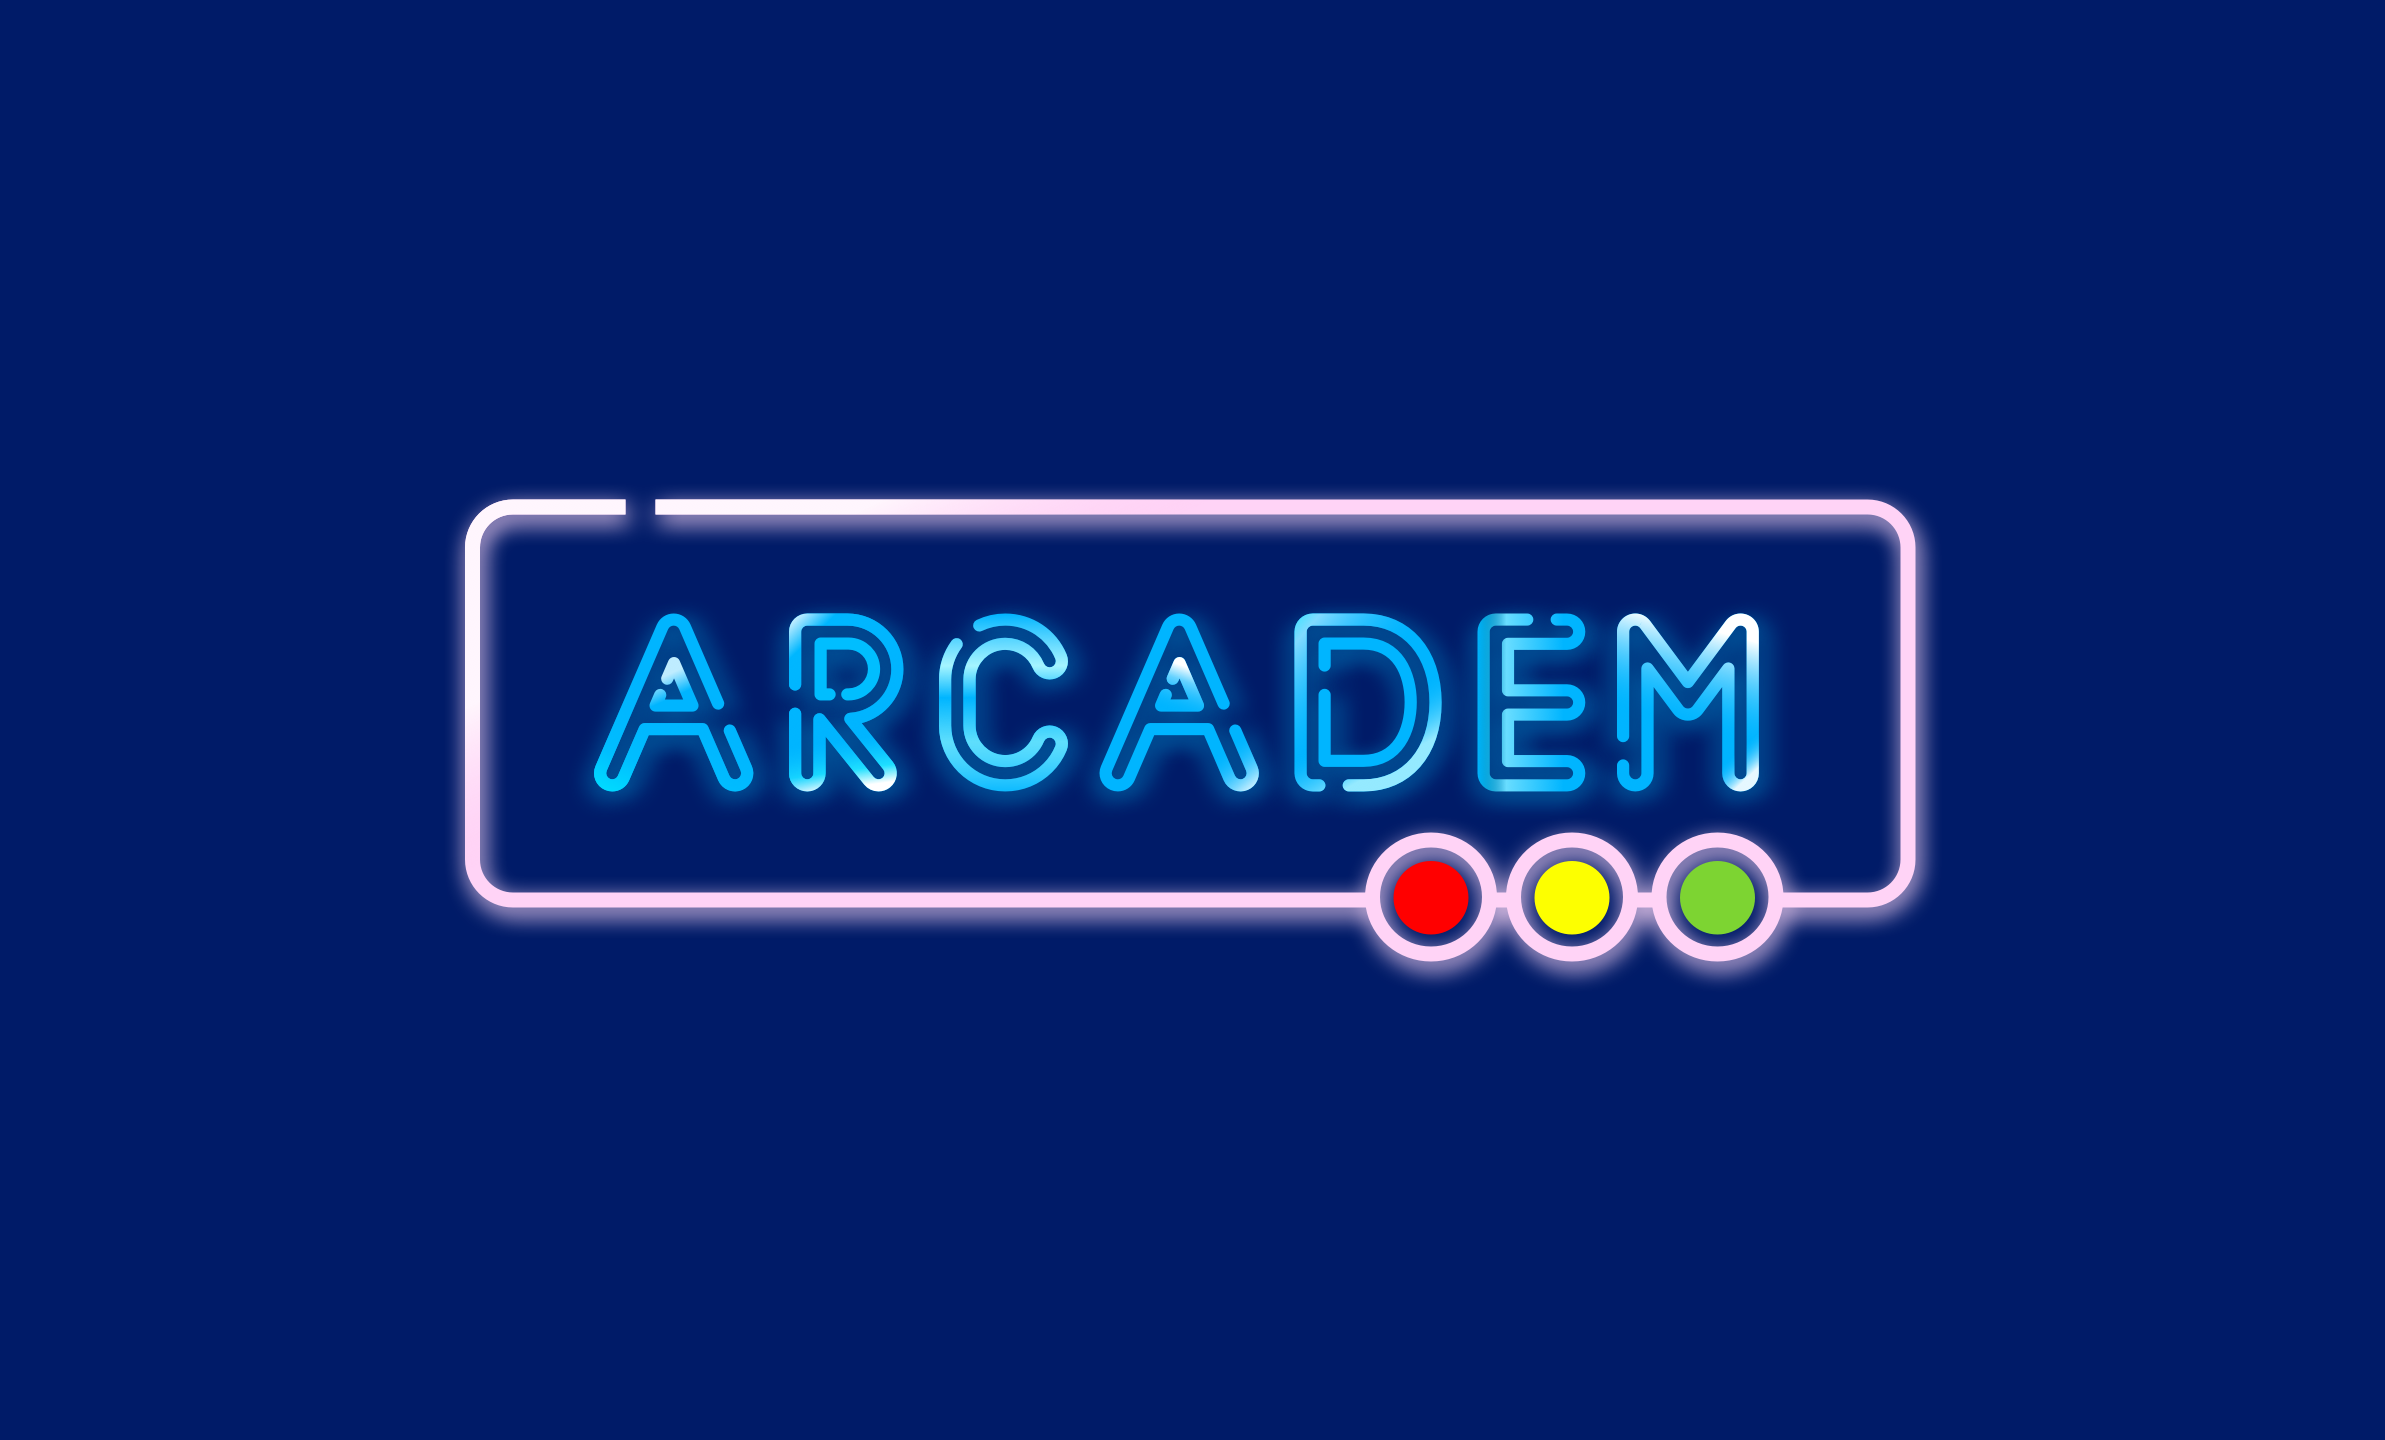 Arcadem - Brilliant name for an arcade